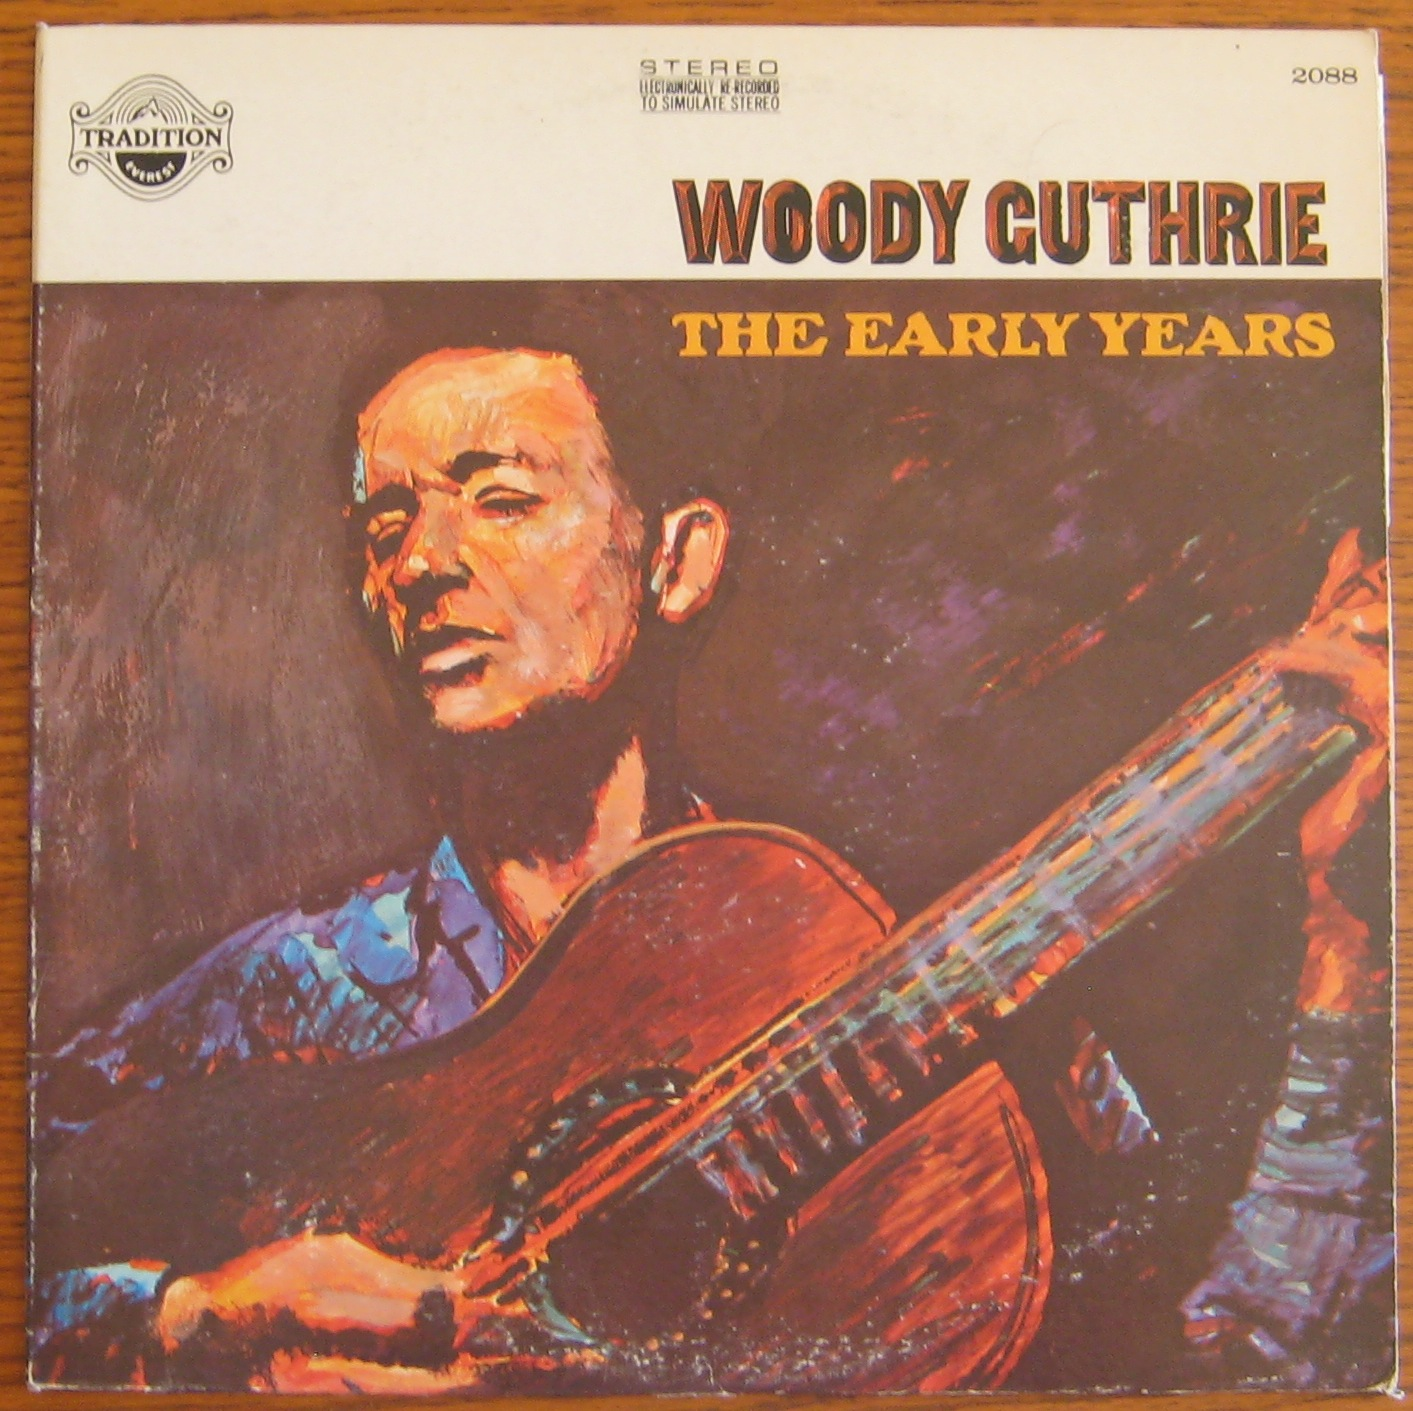 Woody Guthrie - The Early Years